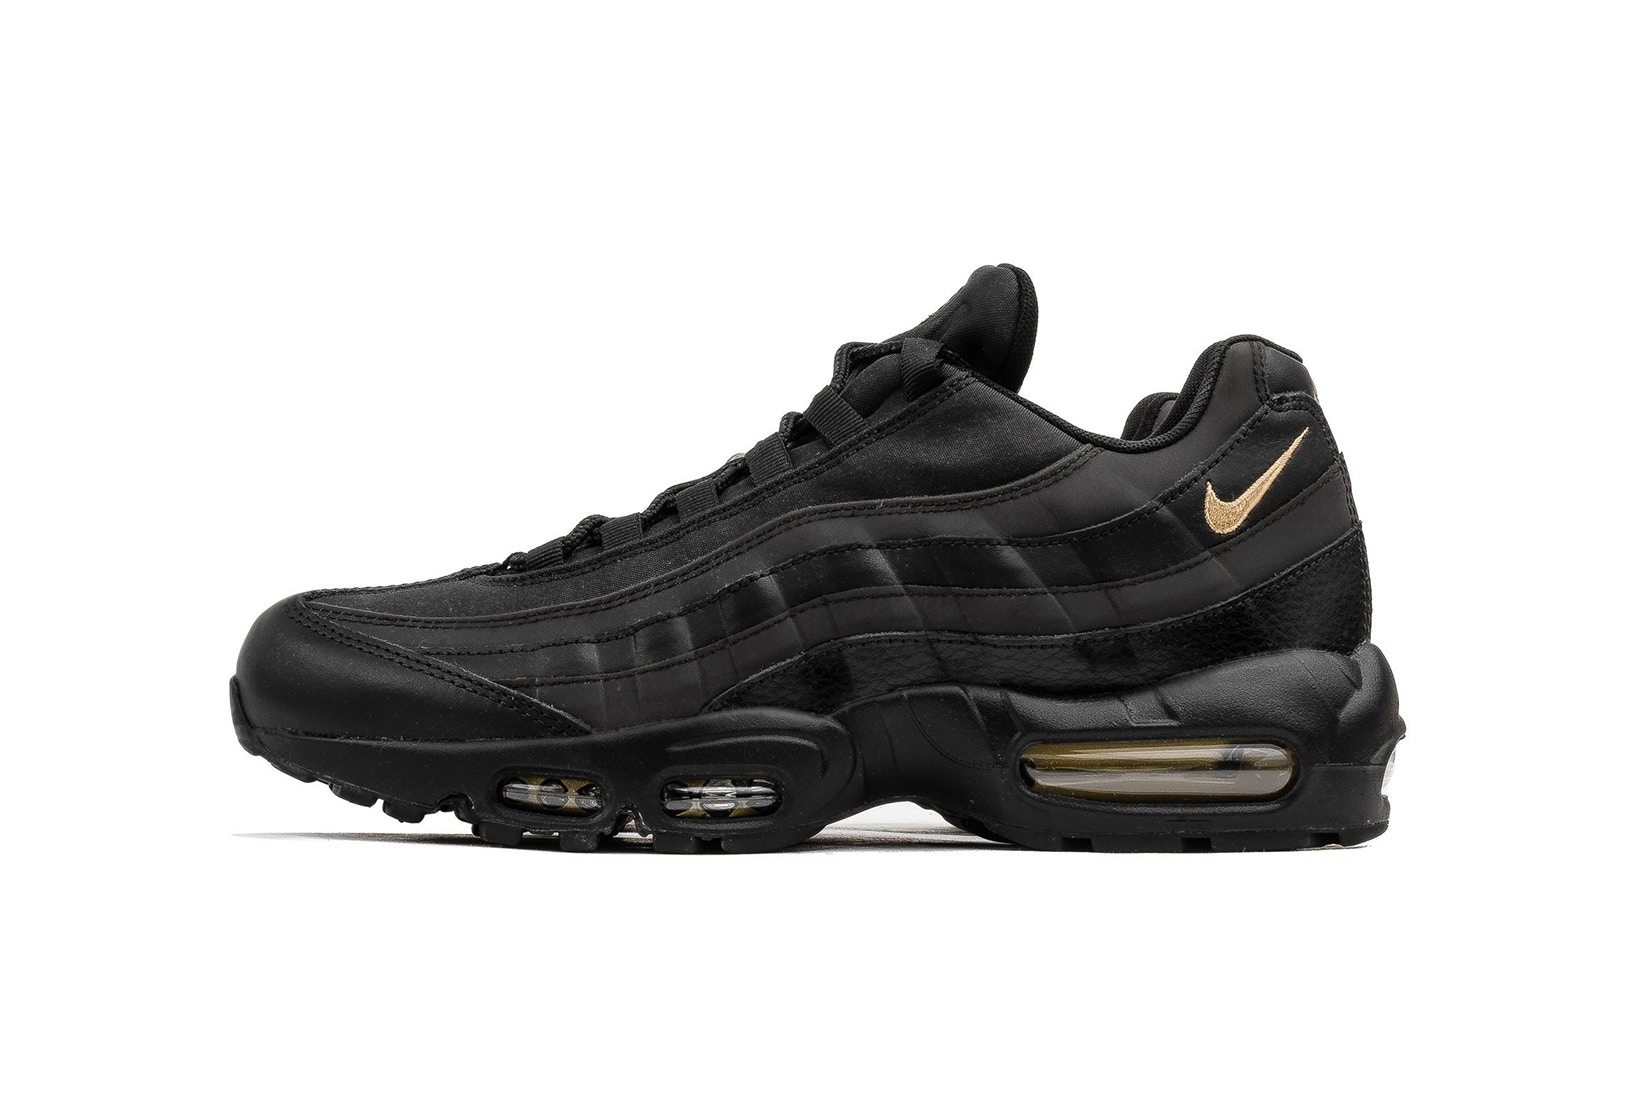 Nike Air Max 95 Premium SE 'Black & Gold' [SneakPeak] nike air max 95 premium se black gold 1